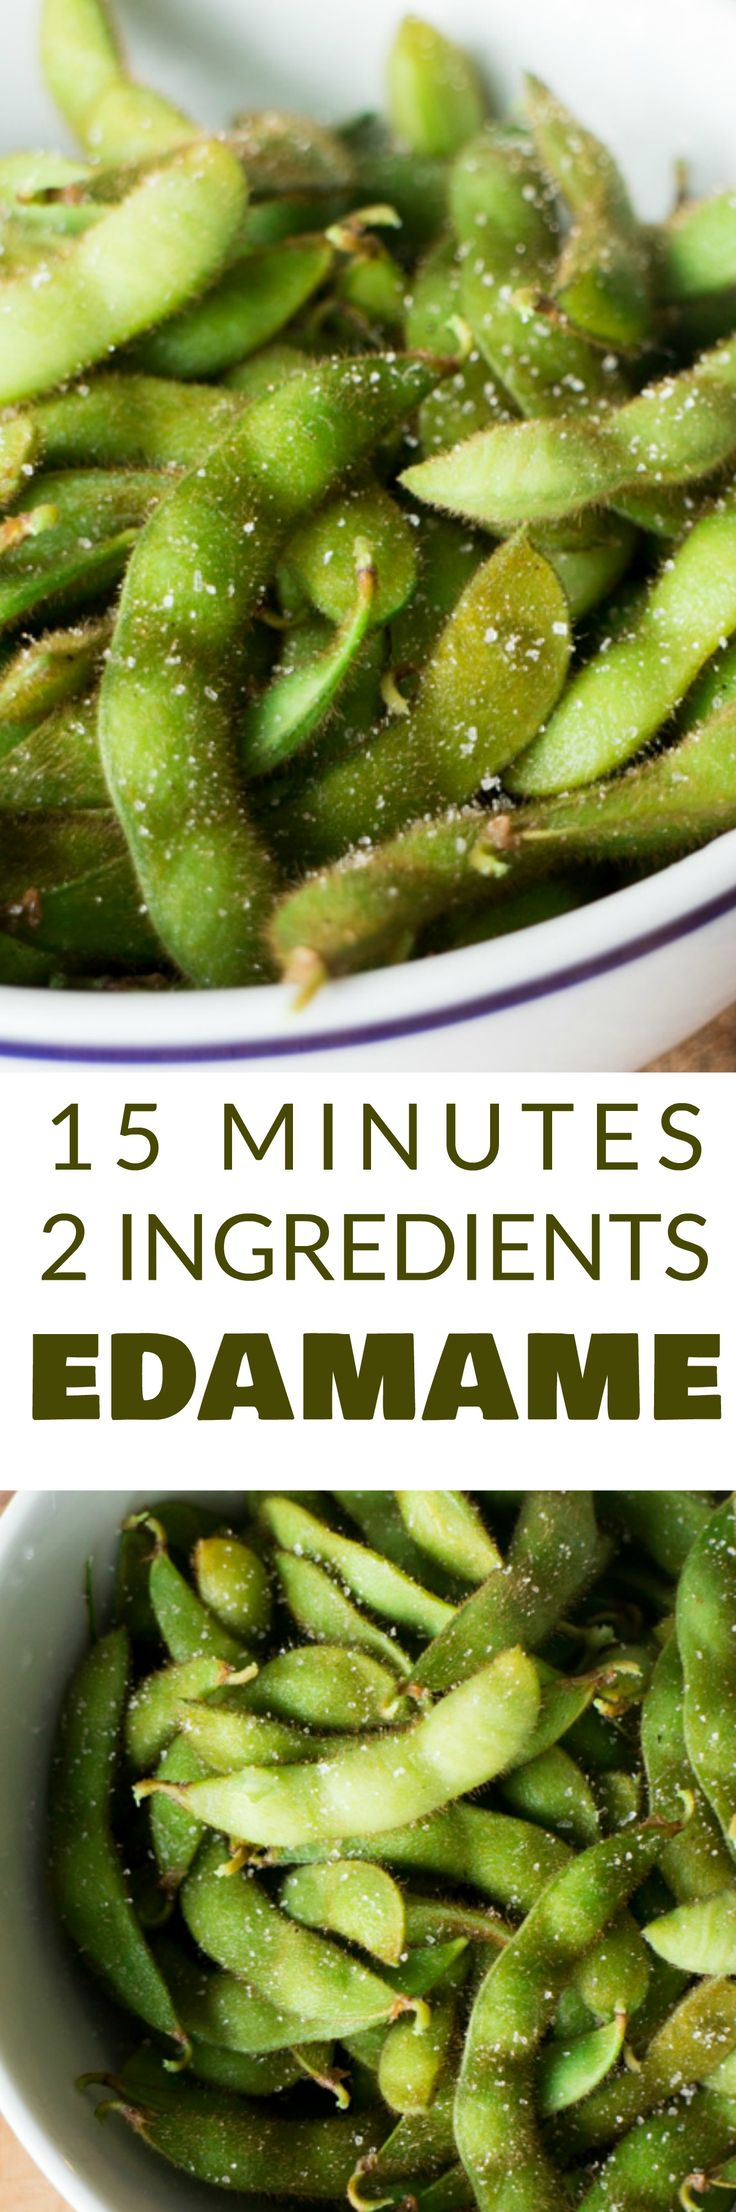 This Homemade Salted Edamame tastes just like your favorite Japanese restaurant. This healthy recipe takes 15 minutes and requires 2 ingredients. Make it as a side dish or a snack!